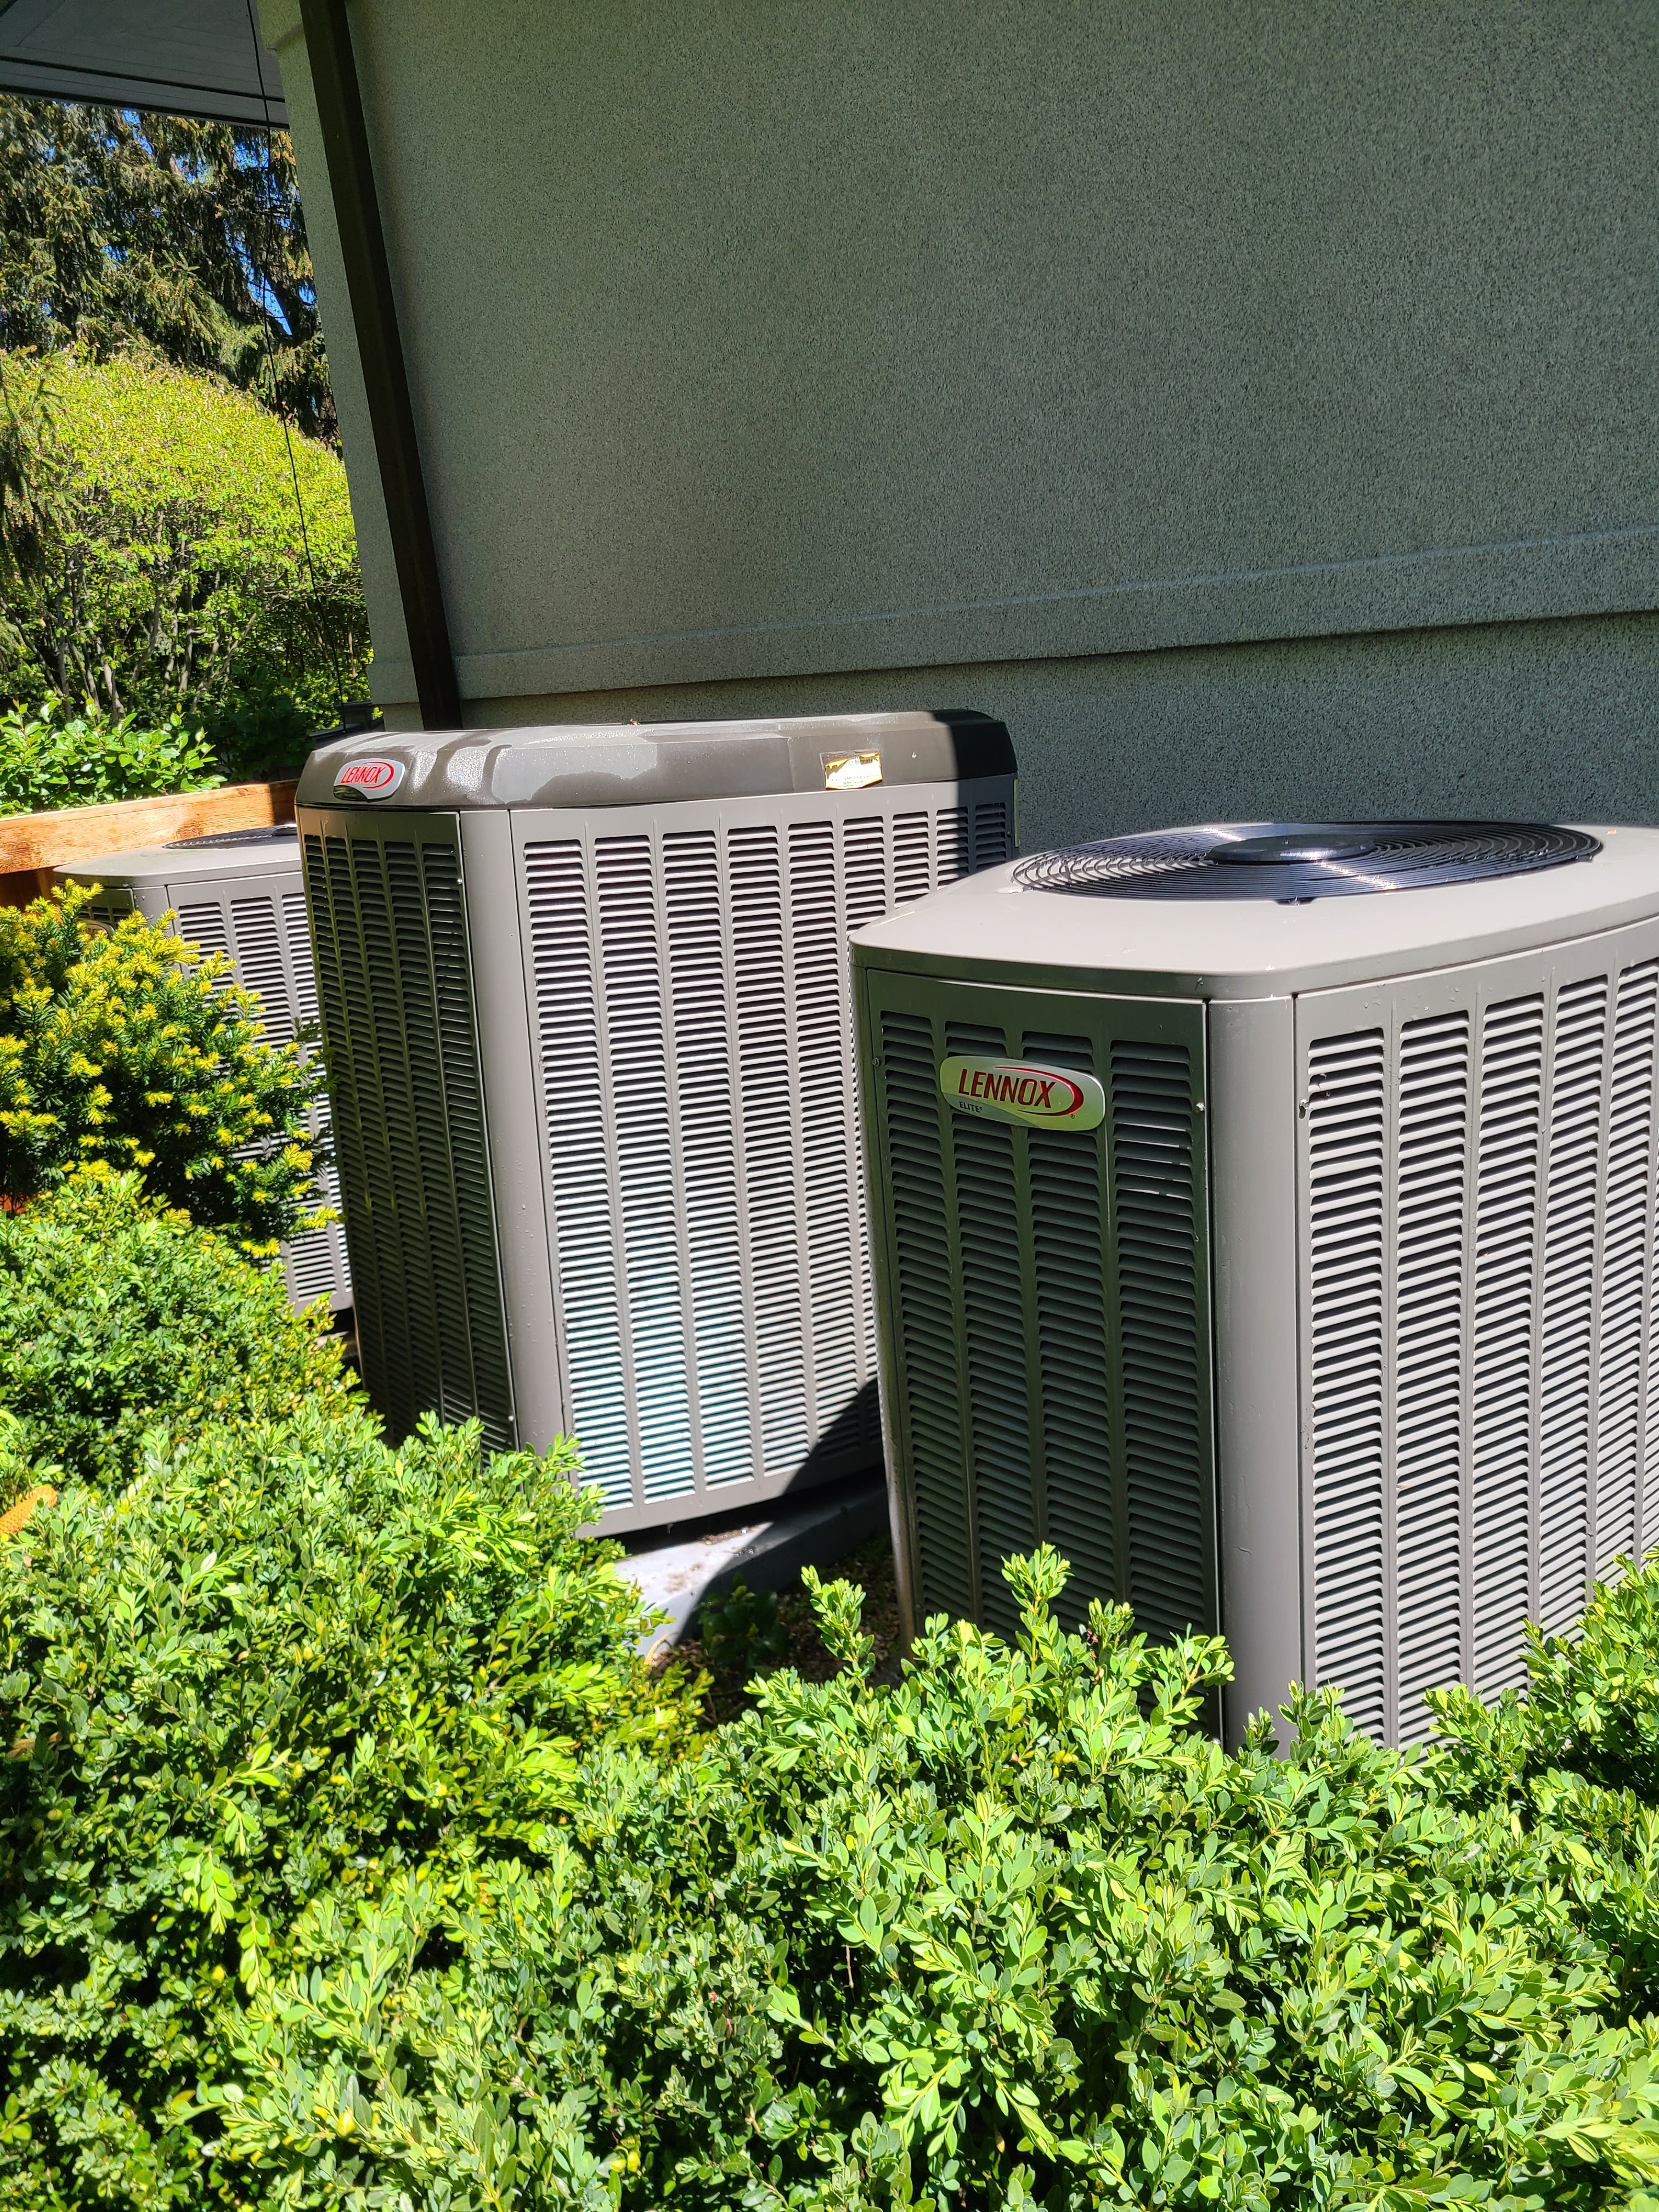 3 Lennox 410a systems cleaned and ready for spring/ summer operation